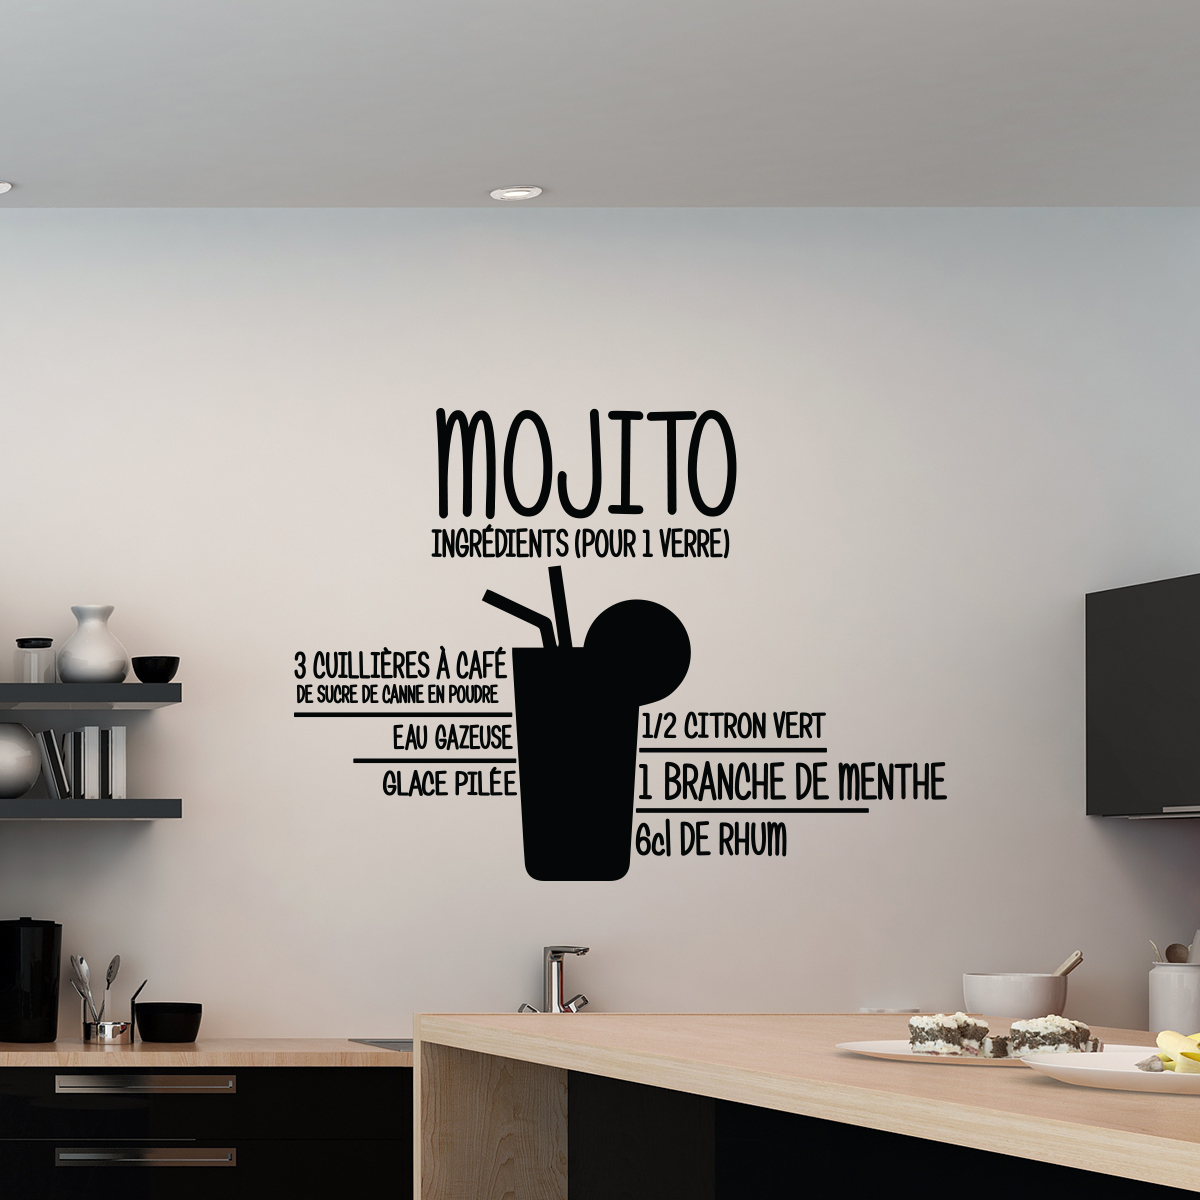 sticker mojito stickers cuisine ambiance. Black Bedroom Furniture Sets. Home Design Ideas